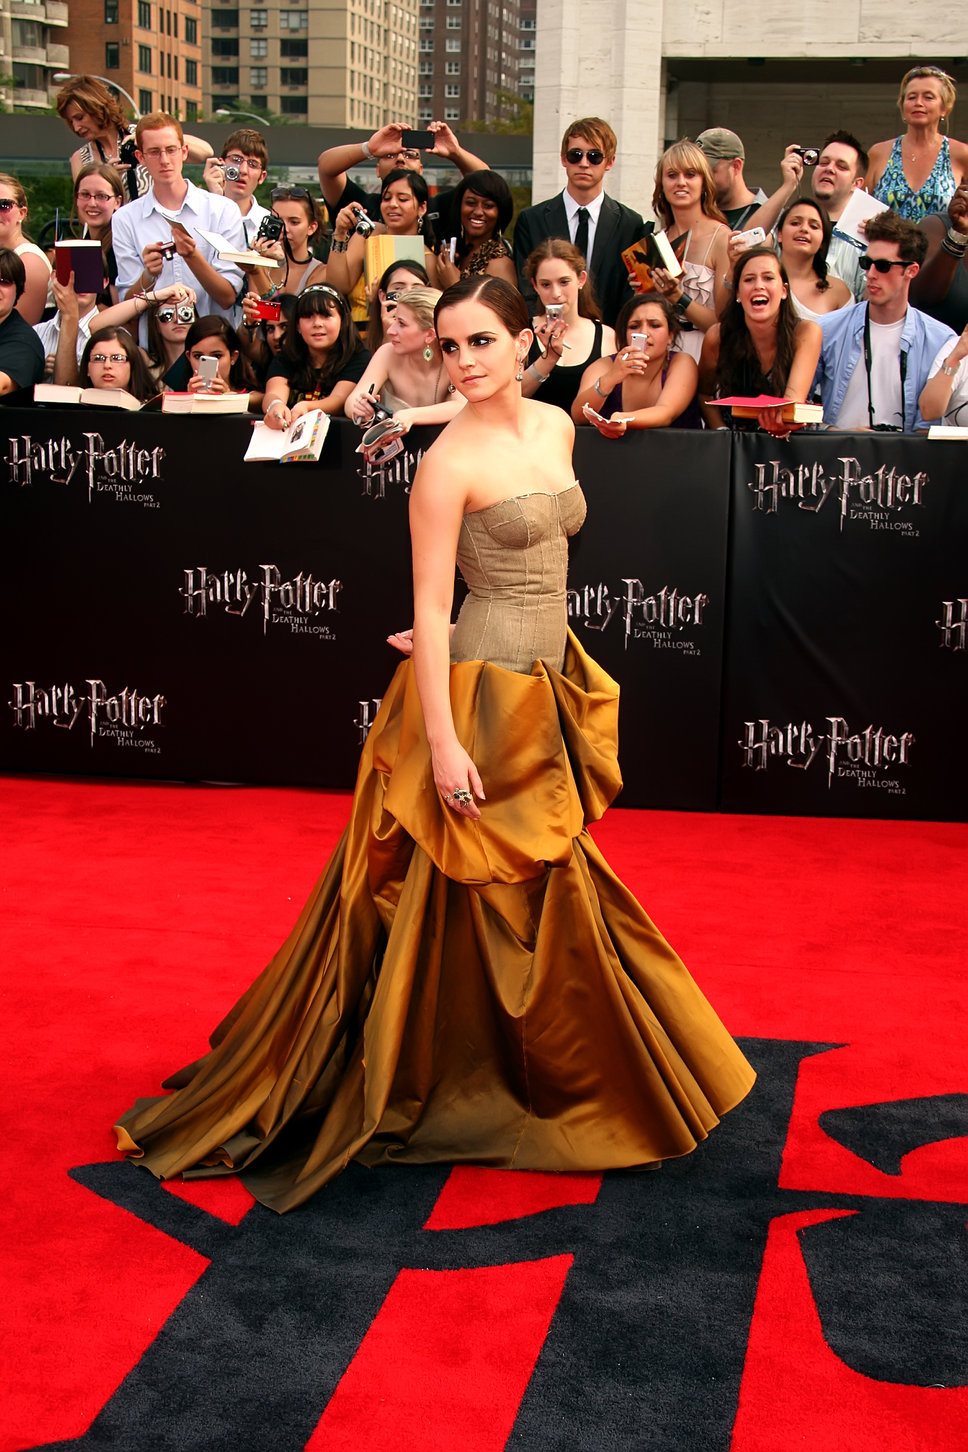 Emma Watson in Beautiful Dress HD Wallpaper - emma watson in beautiful dress wallpapers